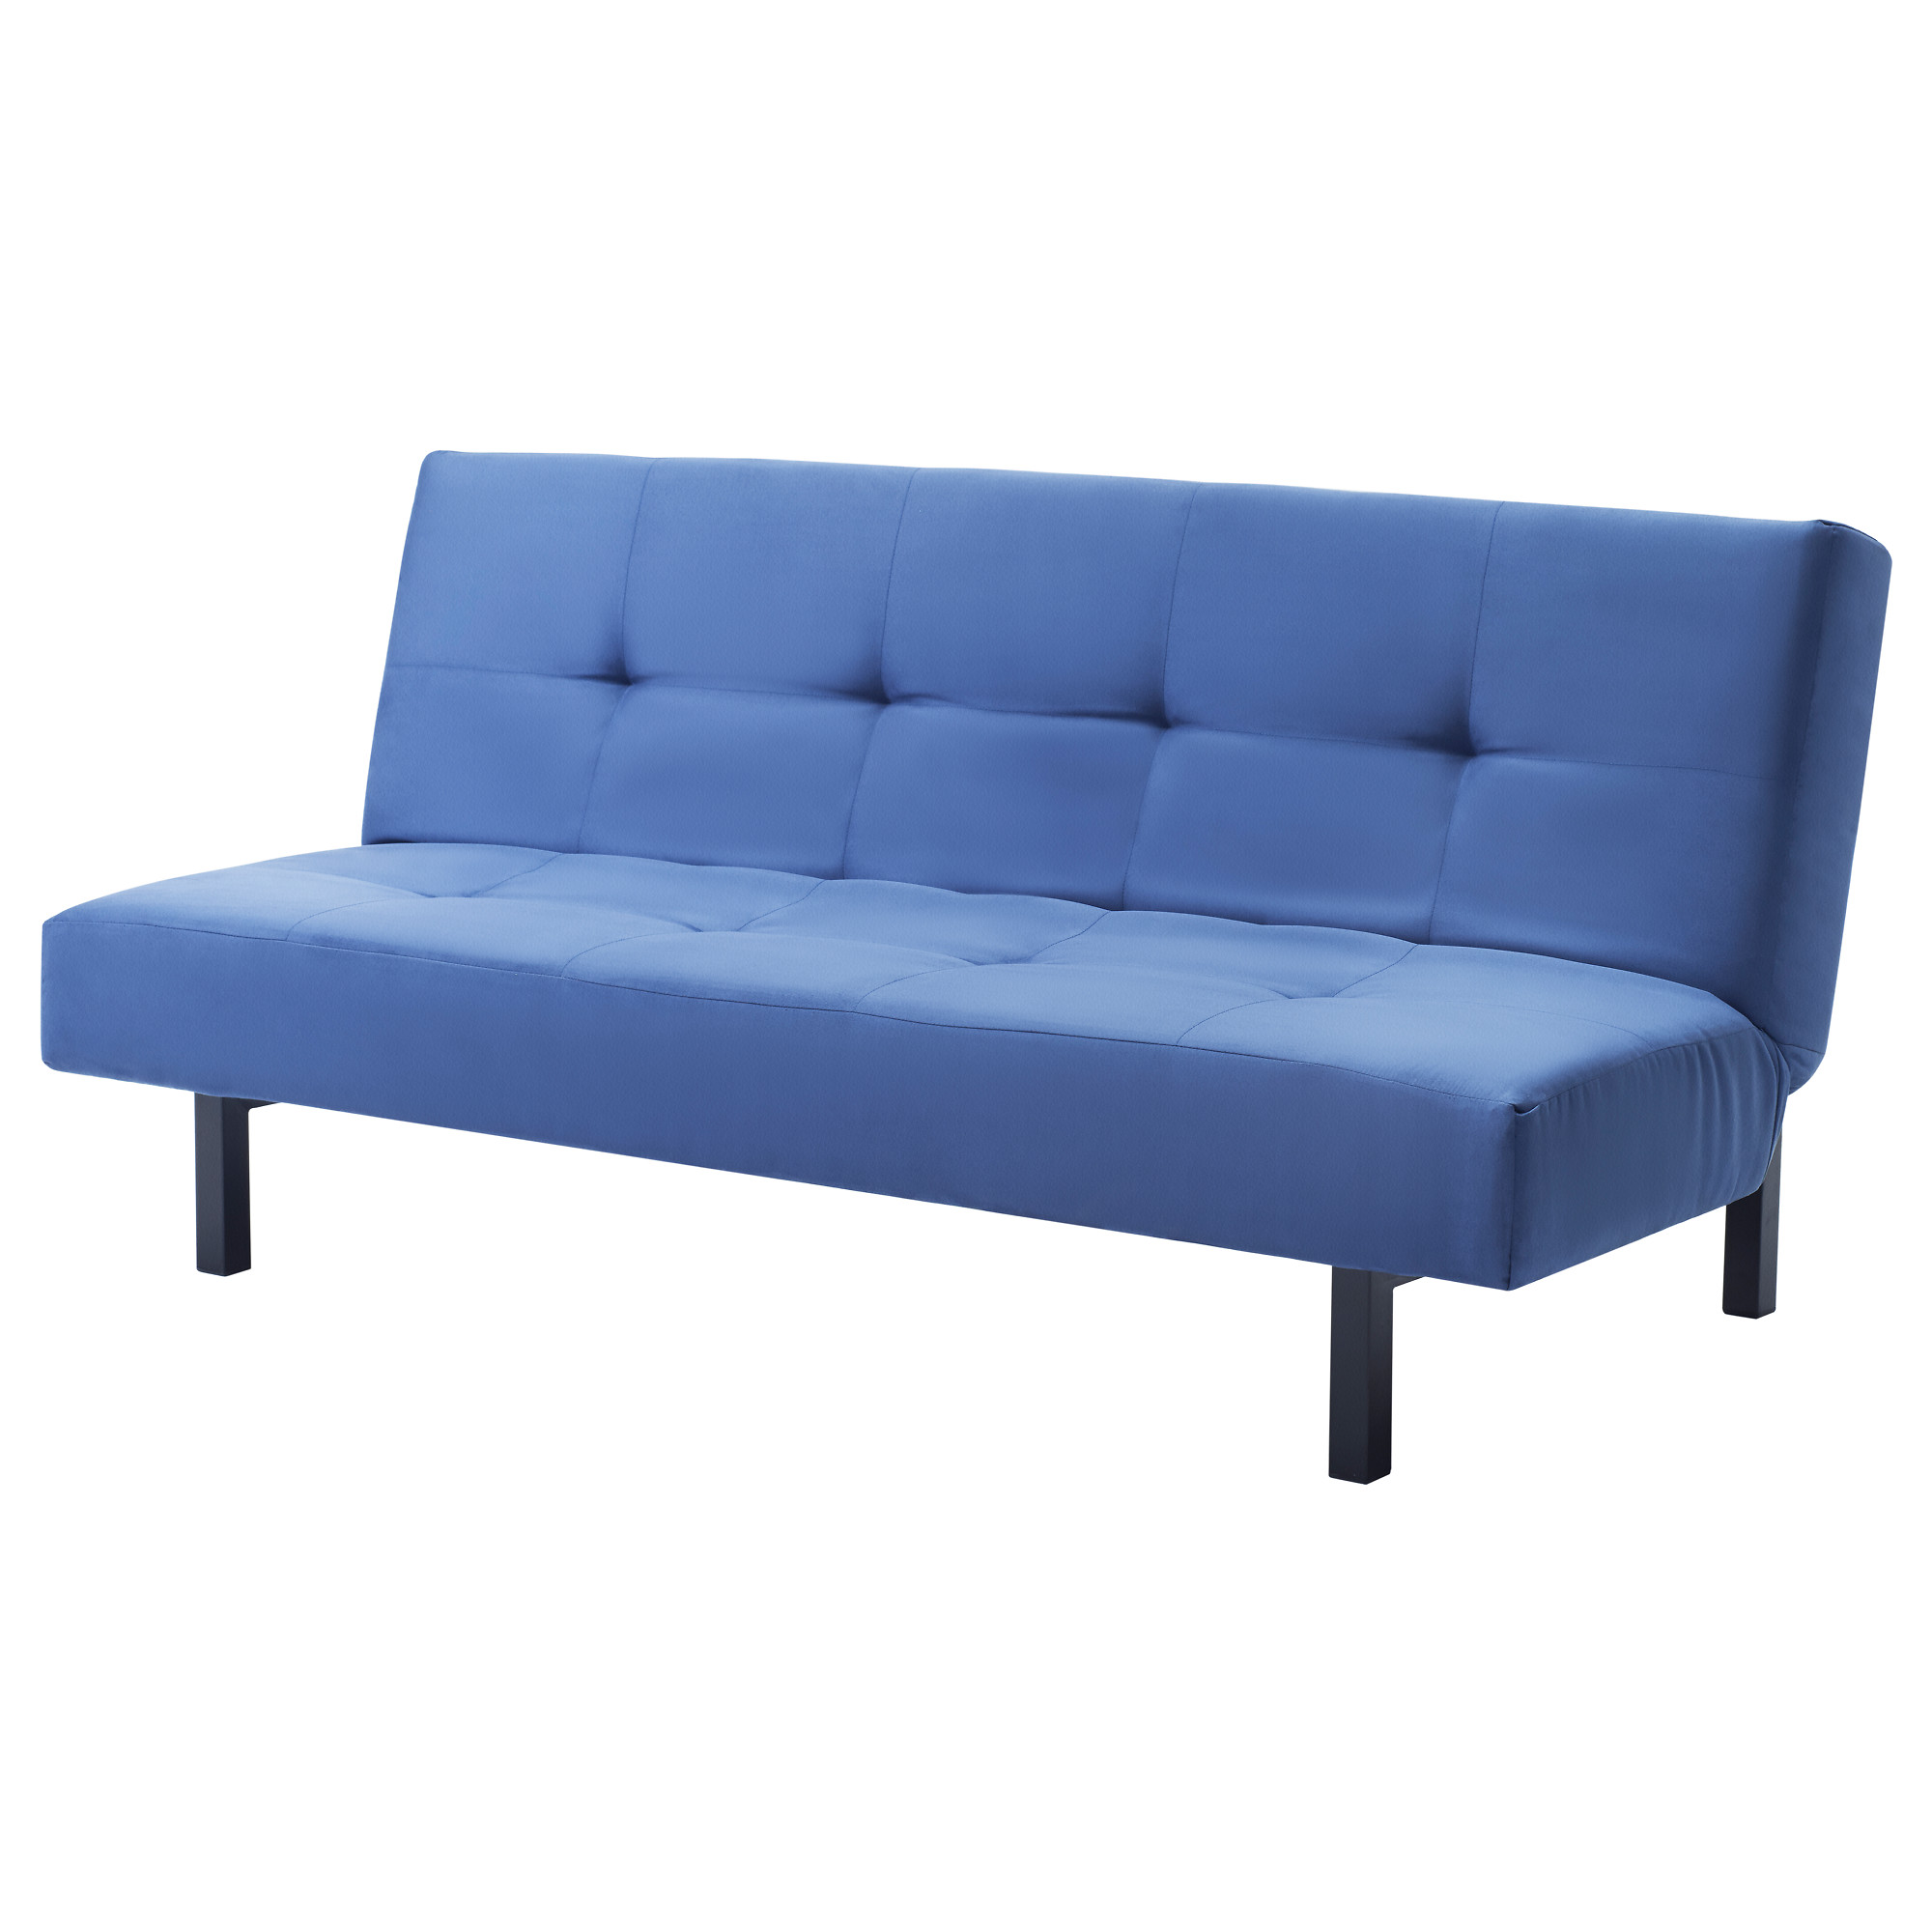 Ikea Sleeper Sofa: Best Sofa Sleepers Ikea